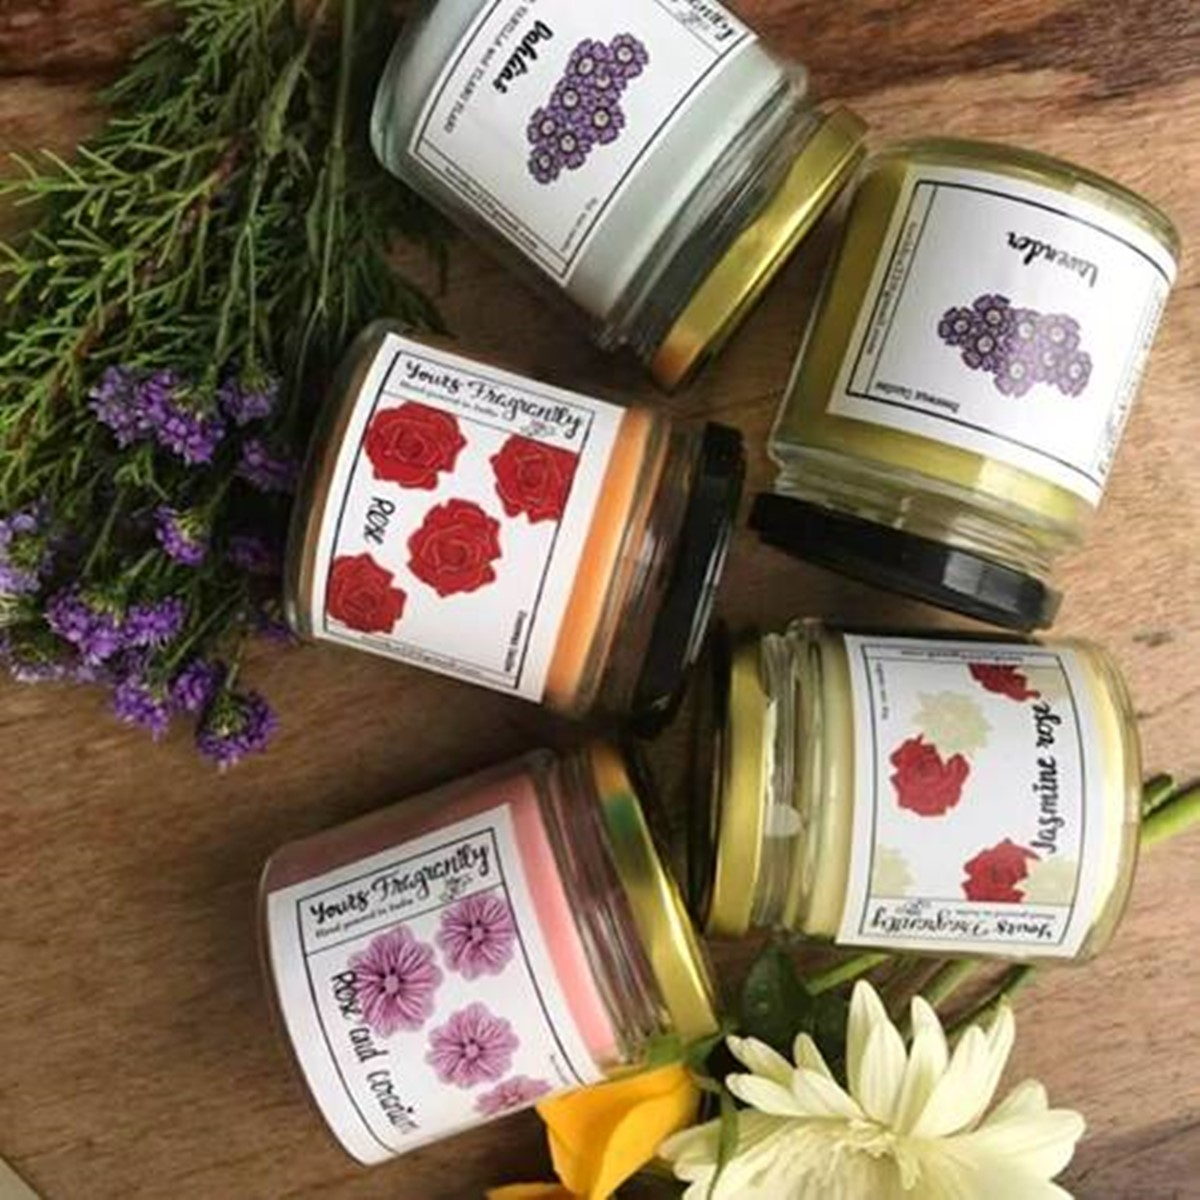 Proven business ideas: Homemade Candles